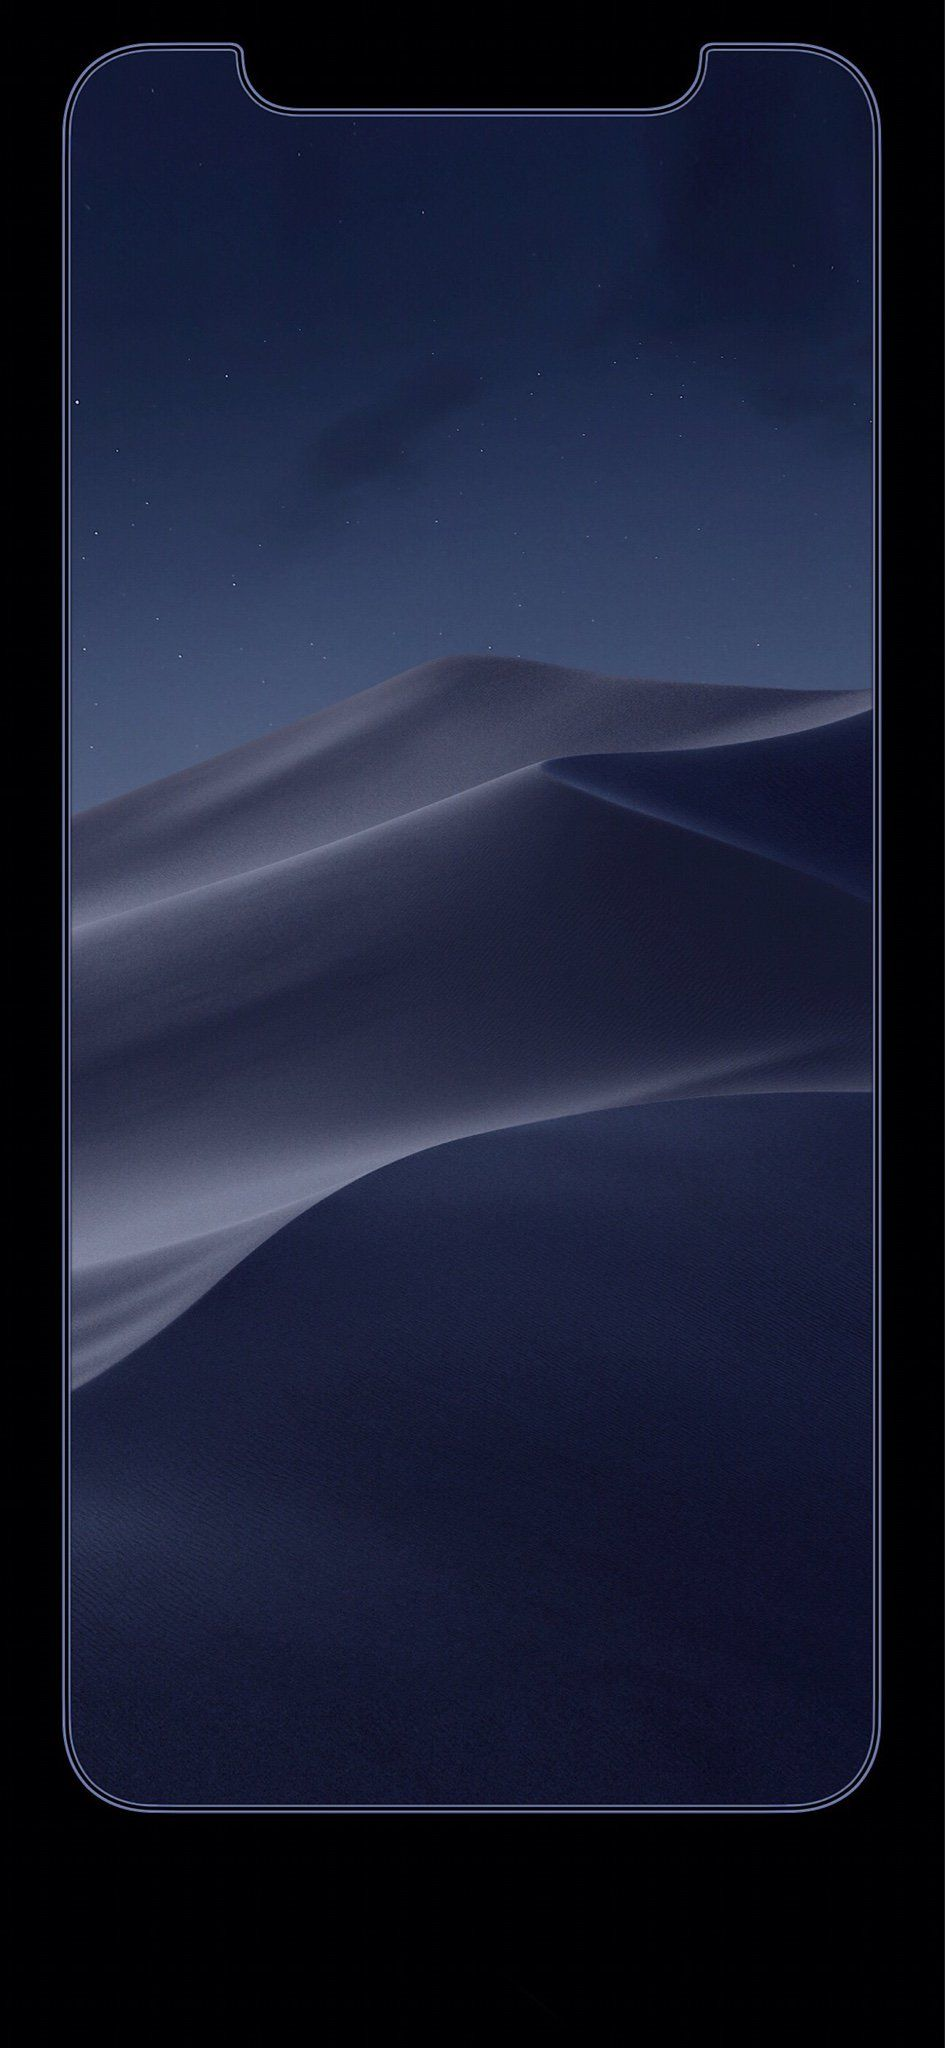 The iPhone X/Xs Wallpaper Thread Page 47 iPhone, iPad